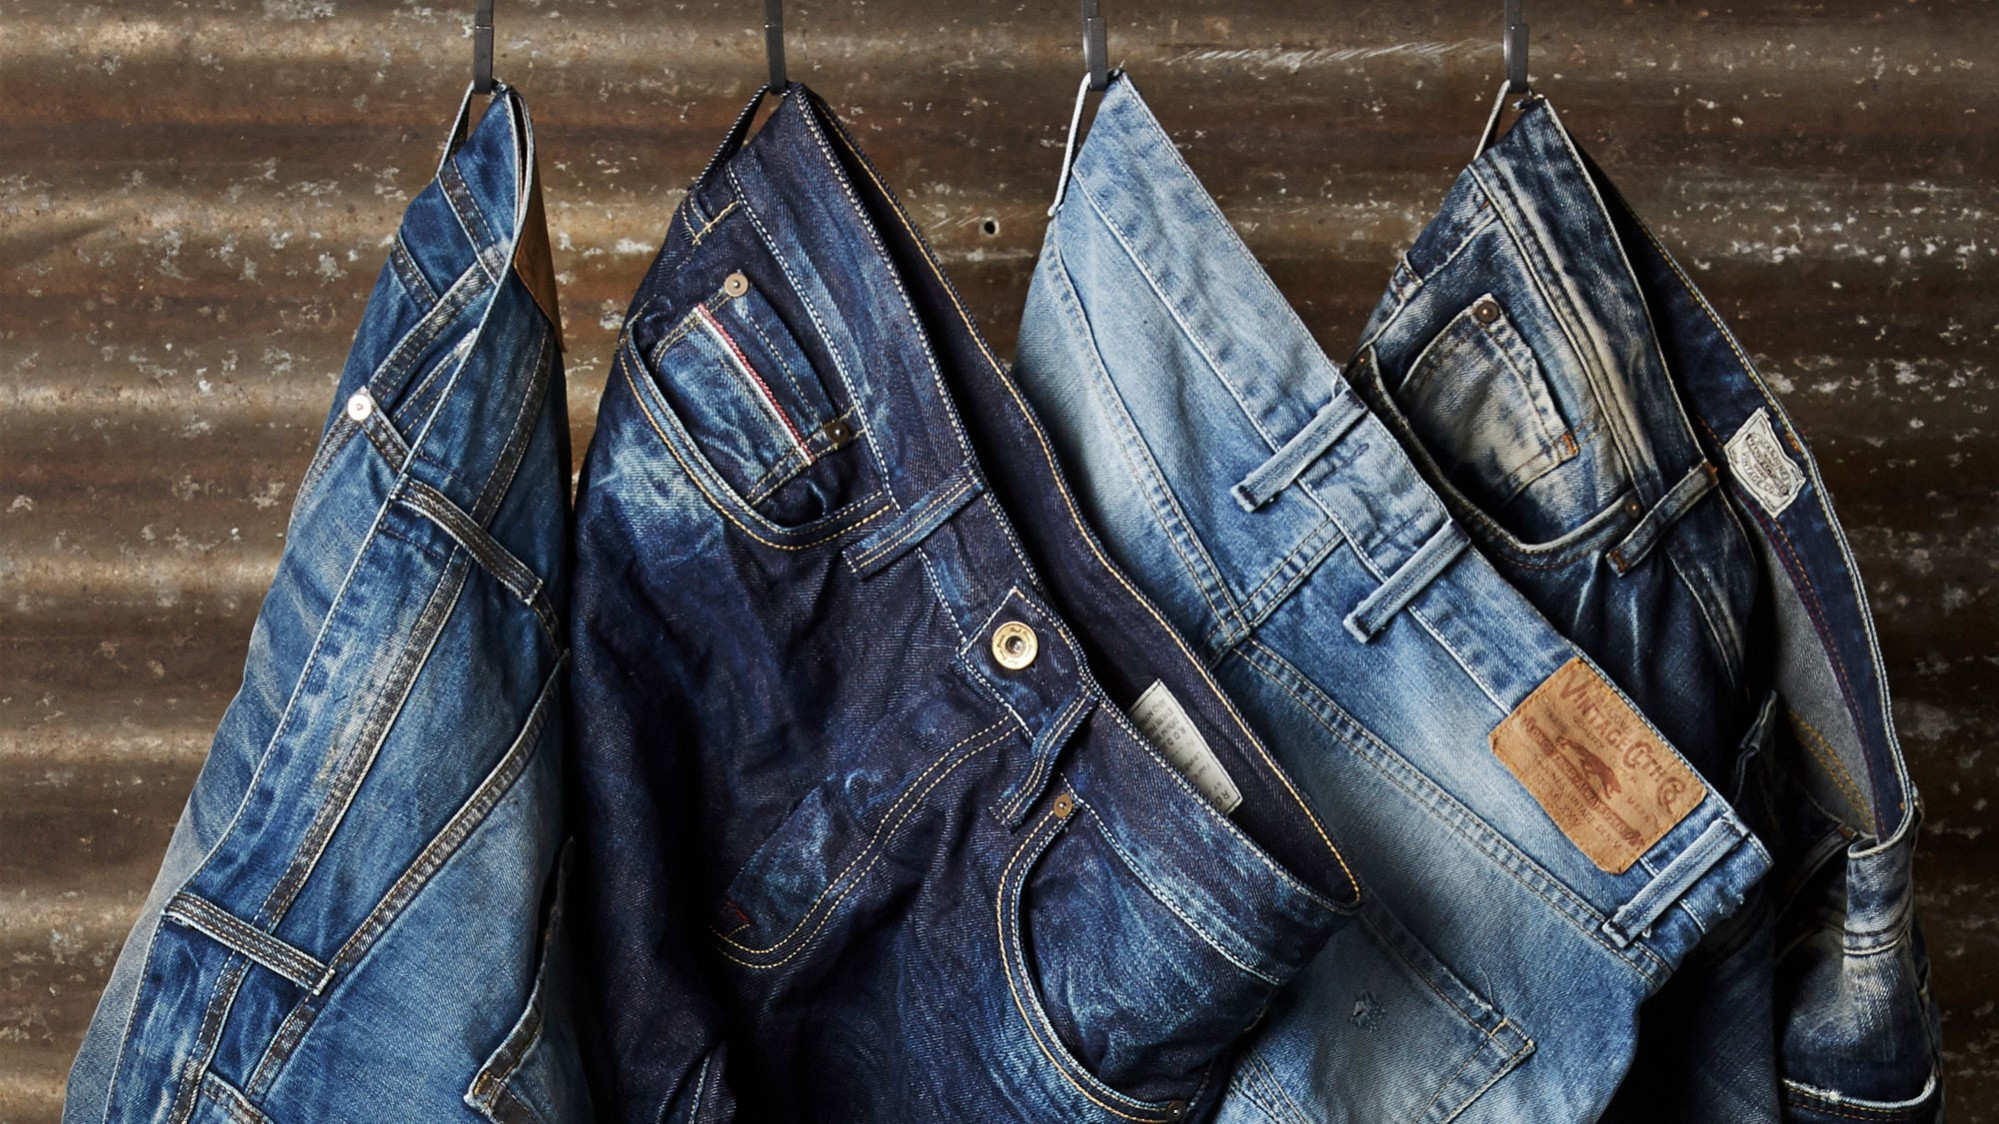 jeans fabric manufacturers in india jeans cloth manufacturers